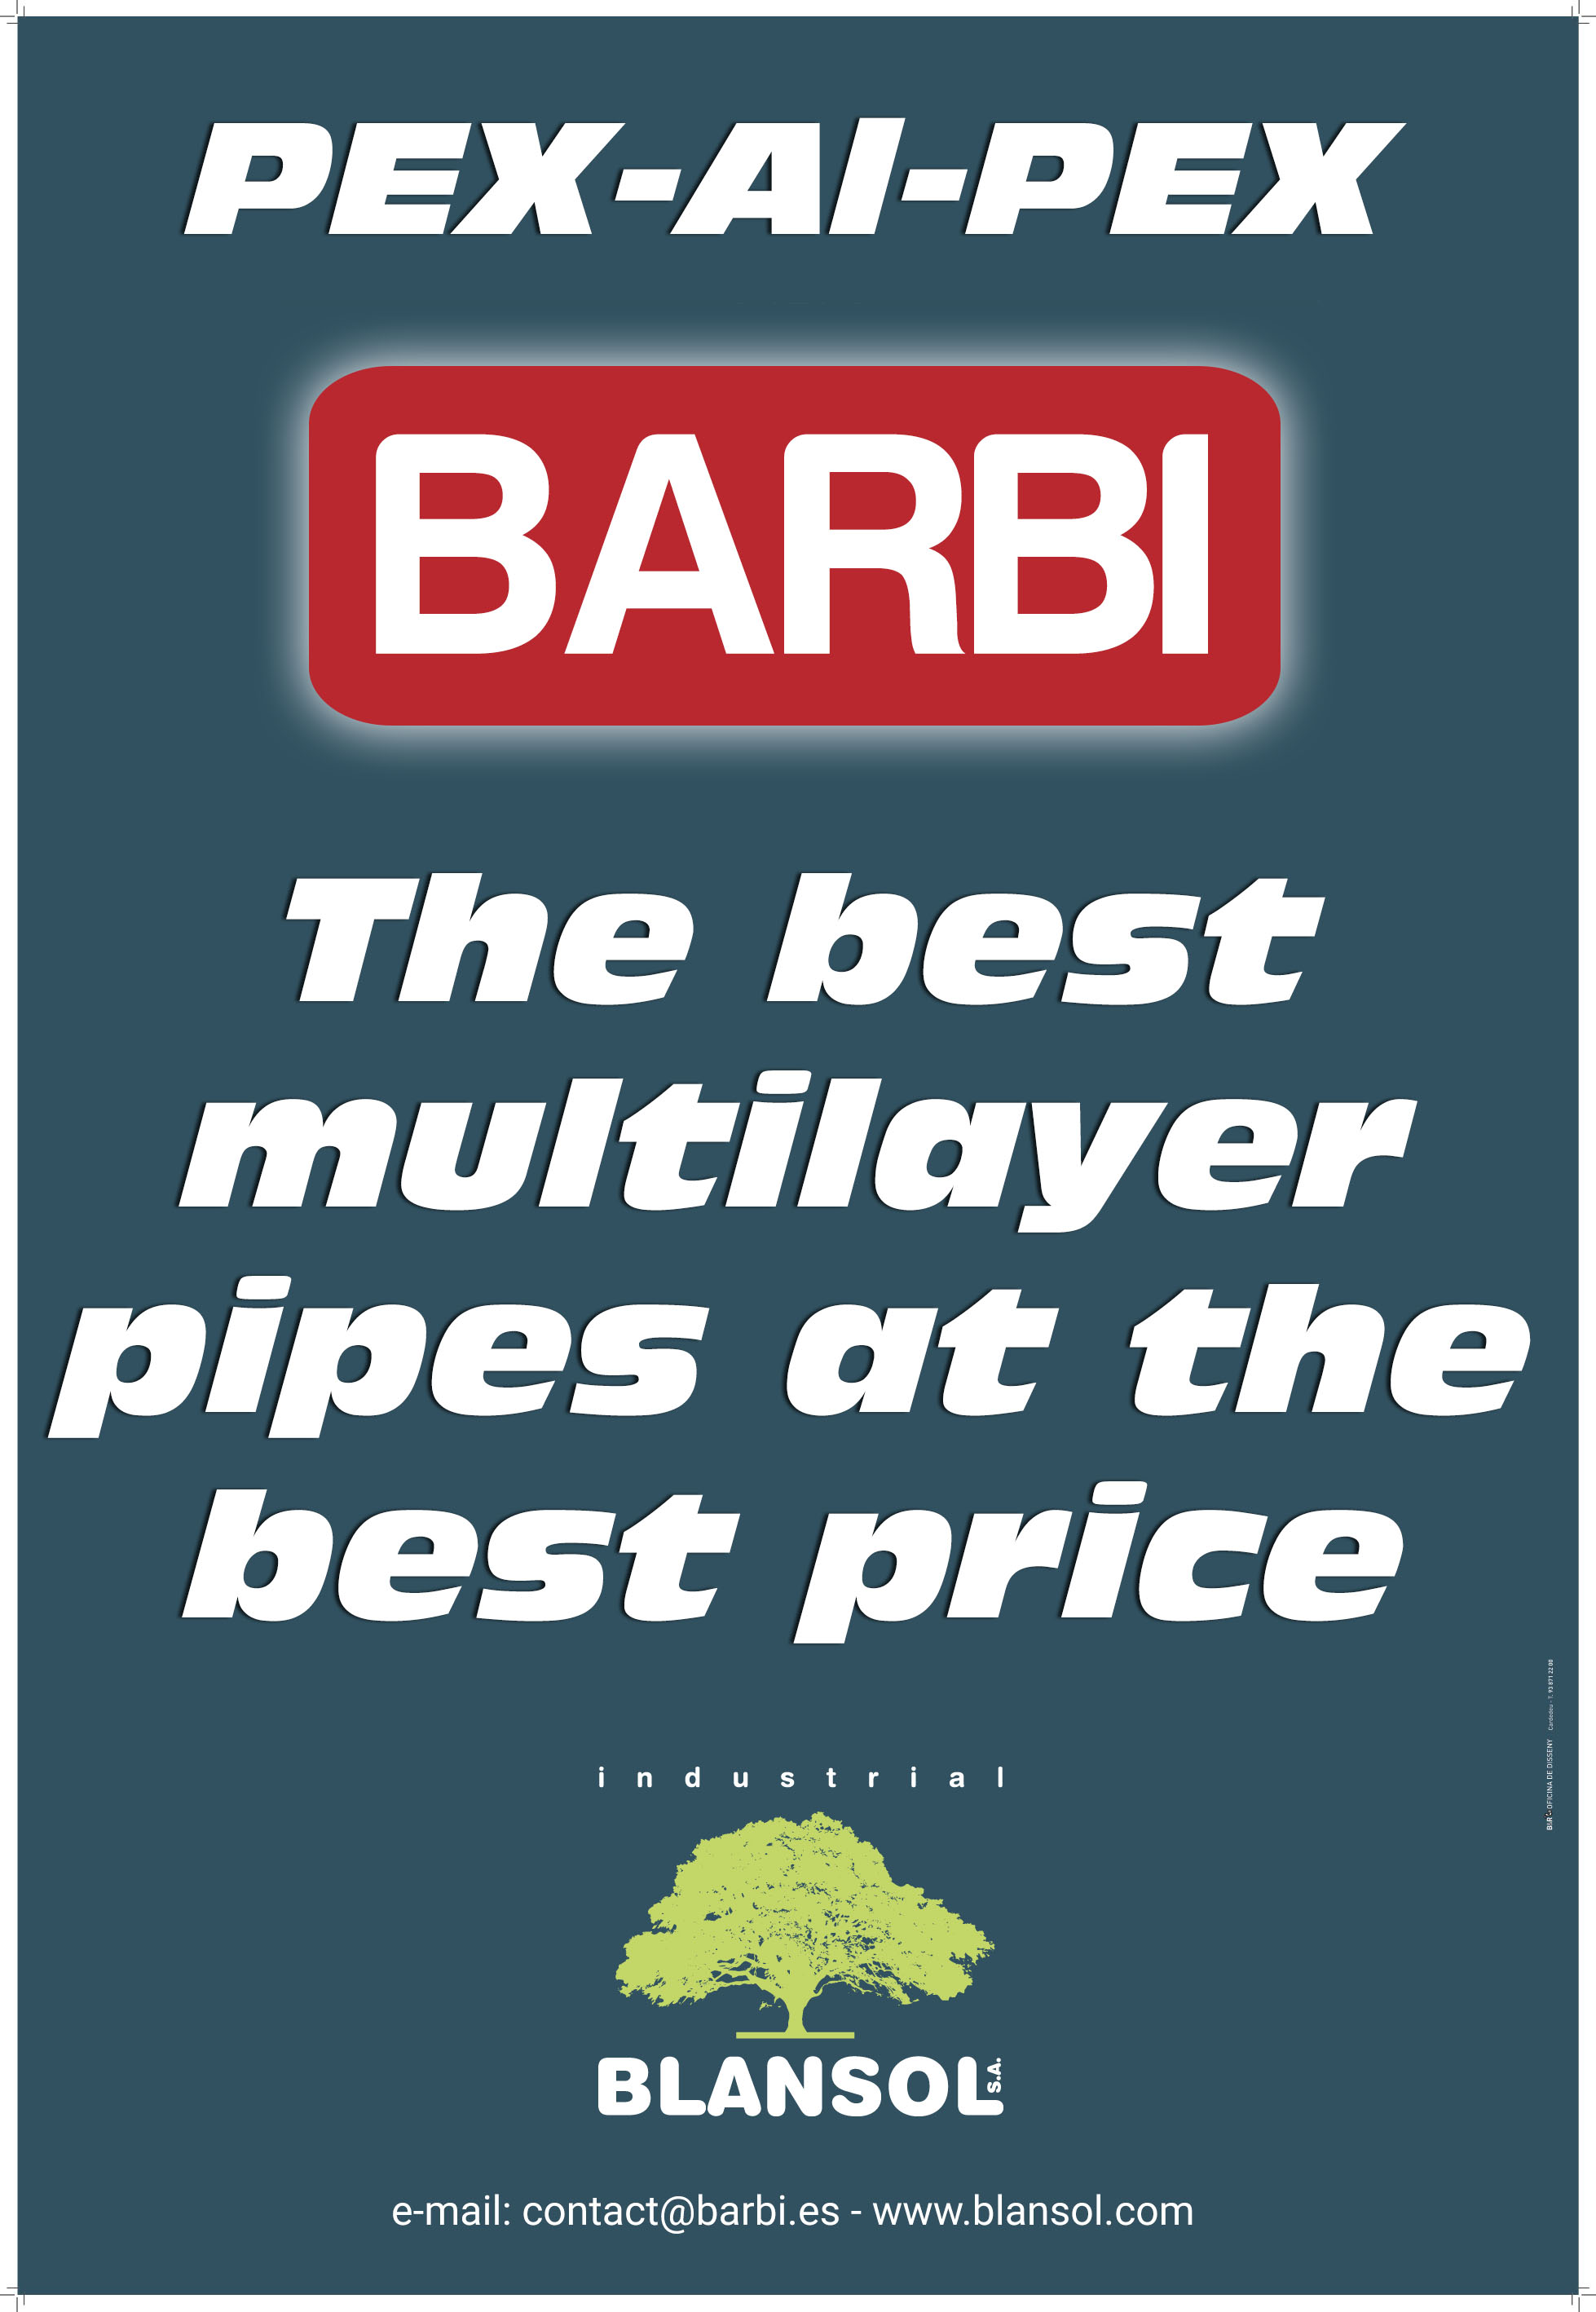 Multilayer PEX-Al-PEX pipes  Barbi